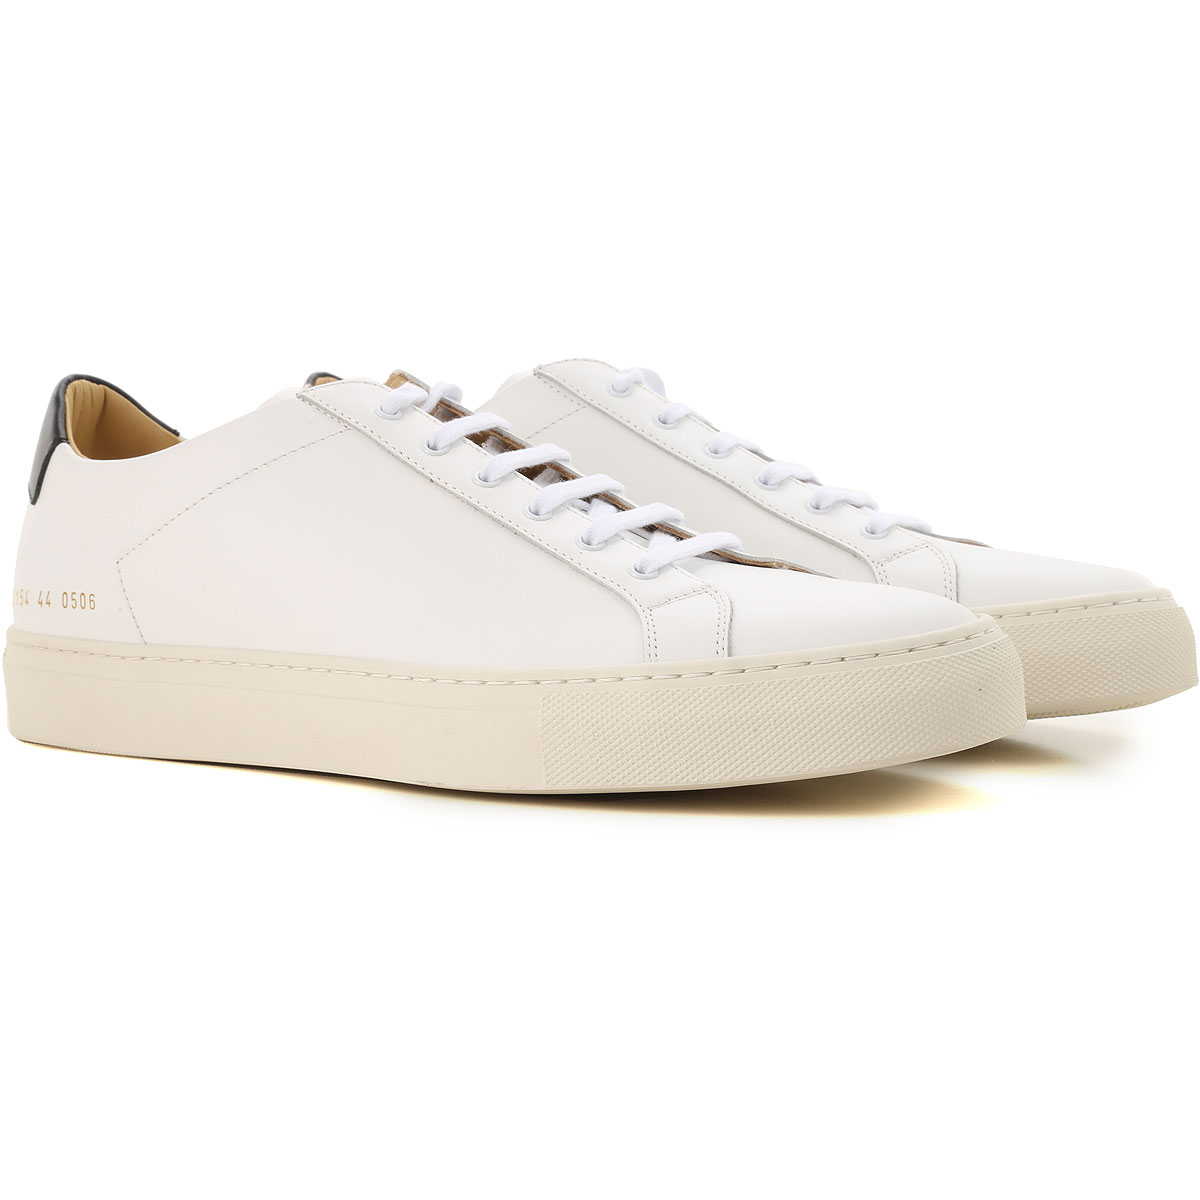 Image of Common Projects Sneakers for Men, White, Leather, 2017, 10.5 6.5 7.5 8 9